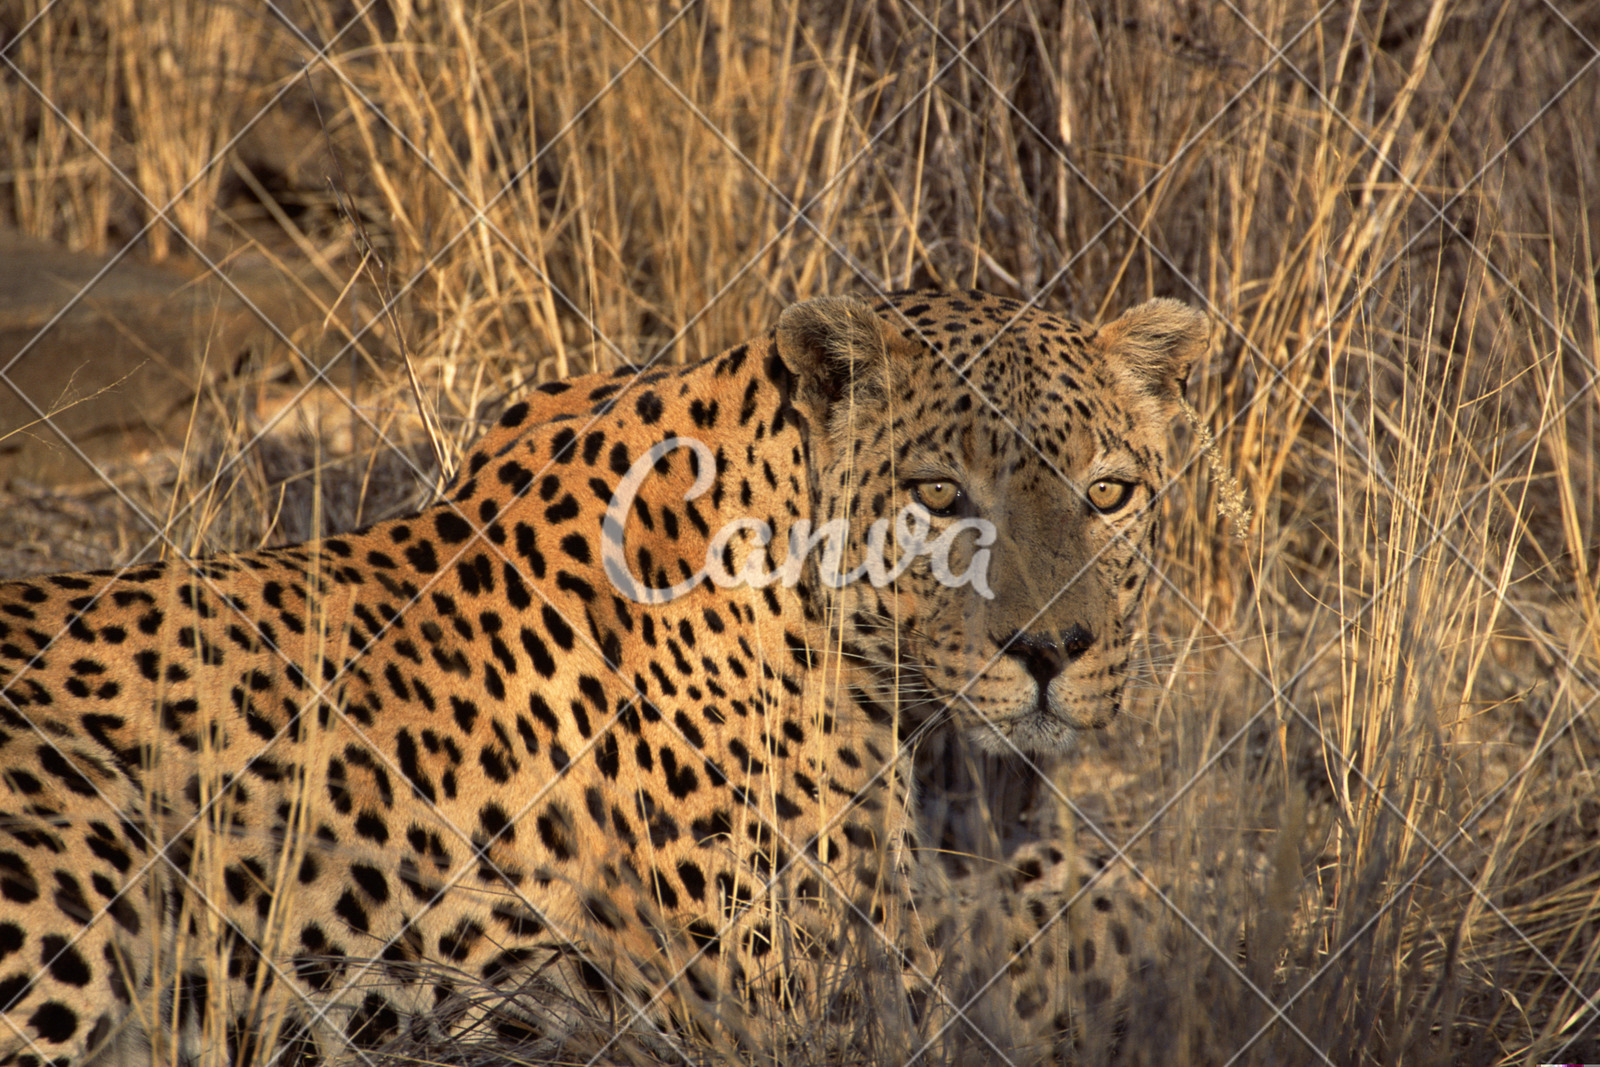 African Leopard Hidden In Grass Namibia Africa Photos By Canva